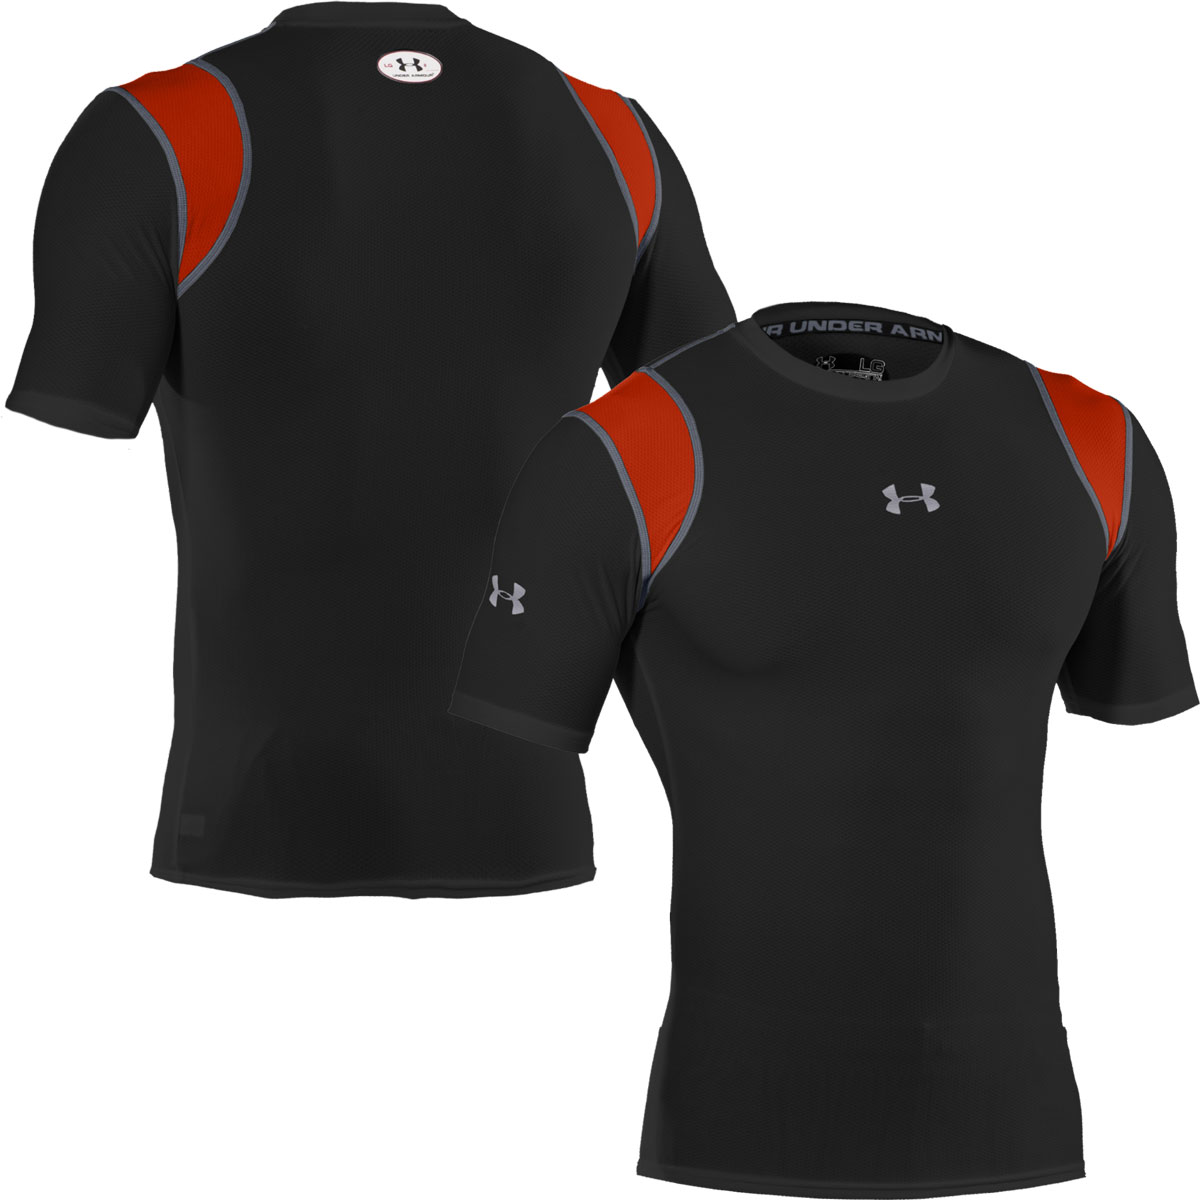 Coachbase the best compression shirts for your players for Under armour i will shirt